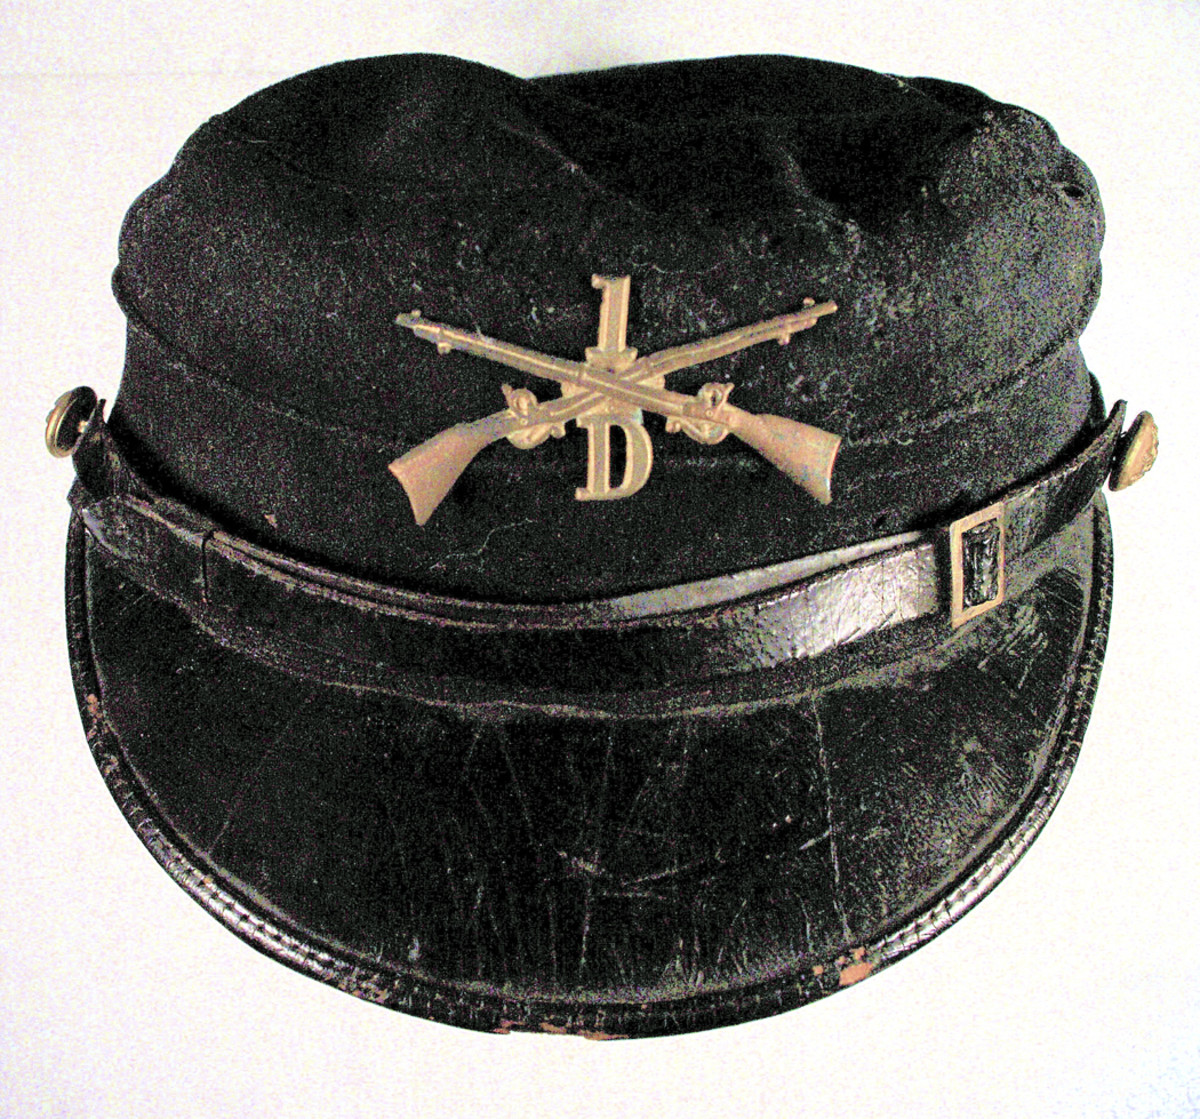 Model 1895 kepi originally worn Infantry Private Bert M. Bartlett, a railroad worker from Devils Lake, North Dakota. The solid brass branch insignia with a screw-post fastener on the reverse replaced the Pattern 1872 branch insignia in 1896.